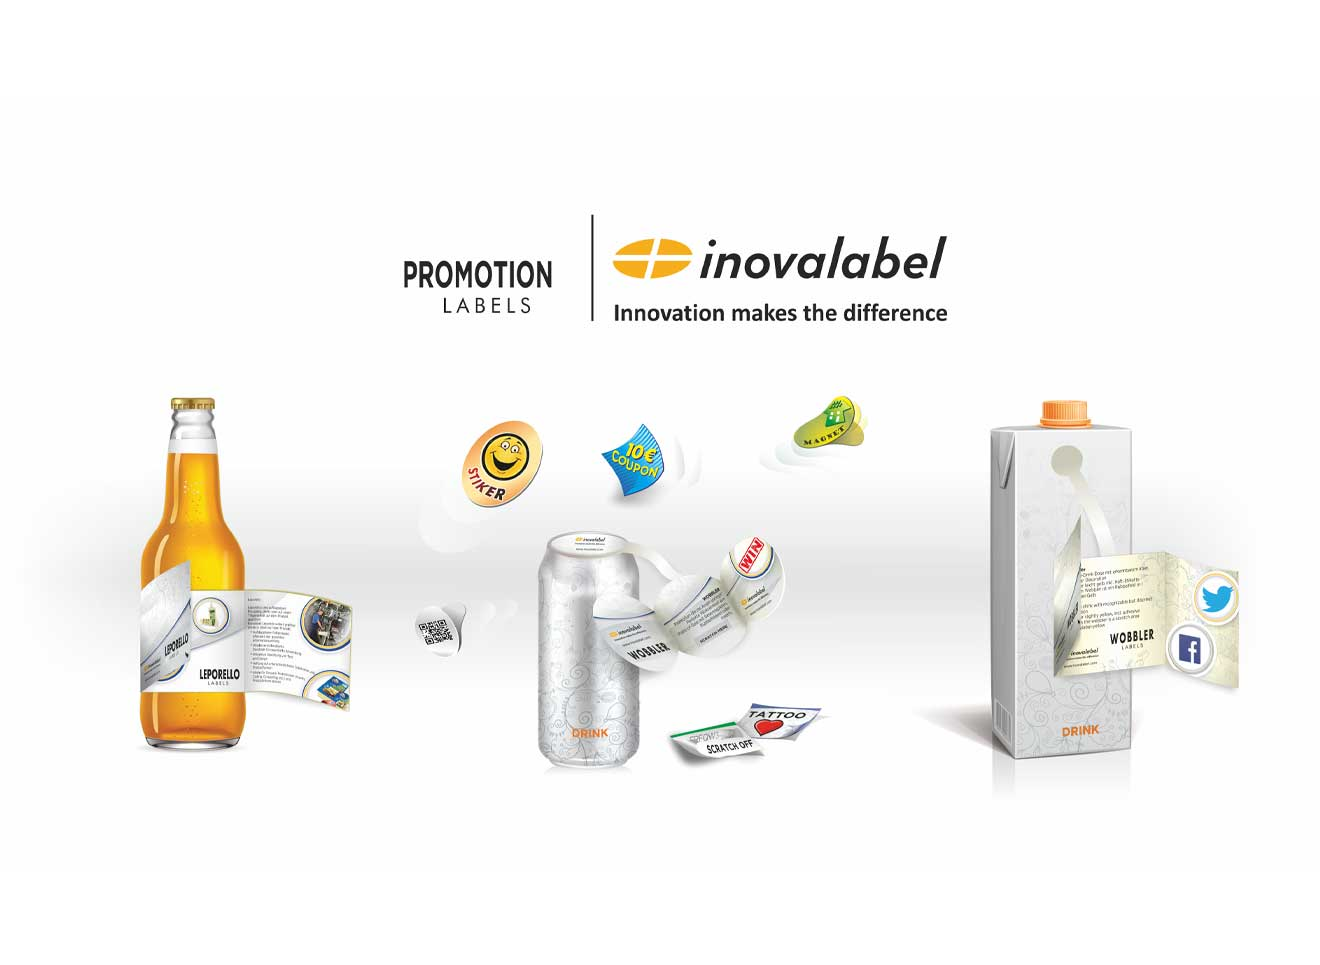 Inovalabel-Promotion